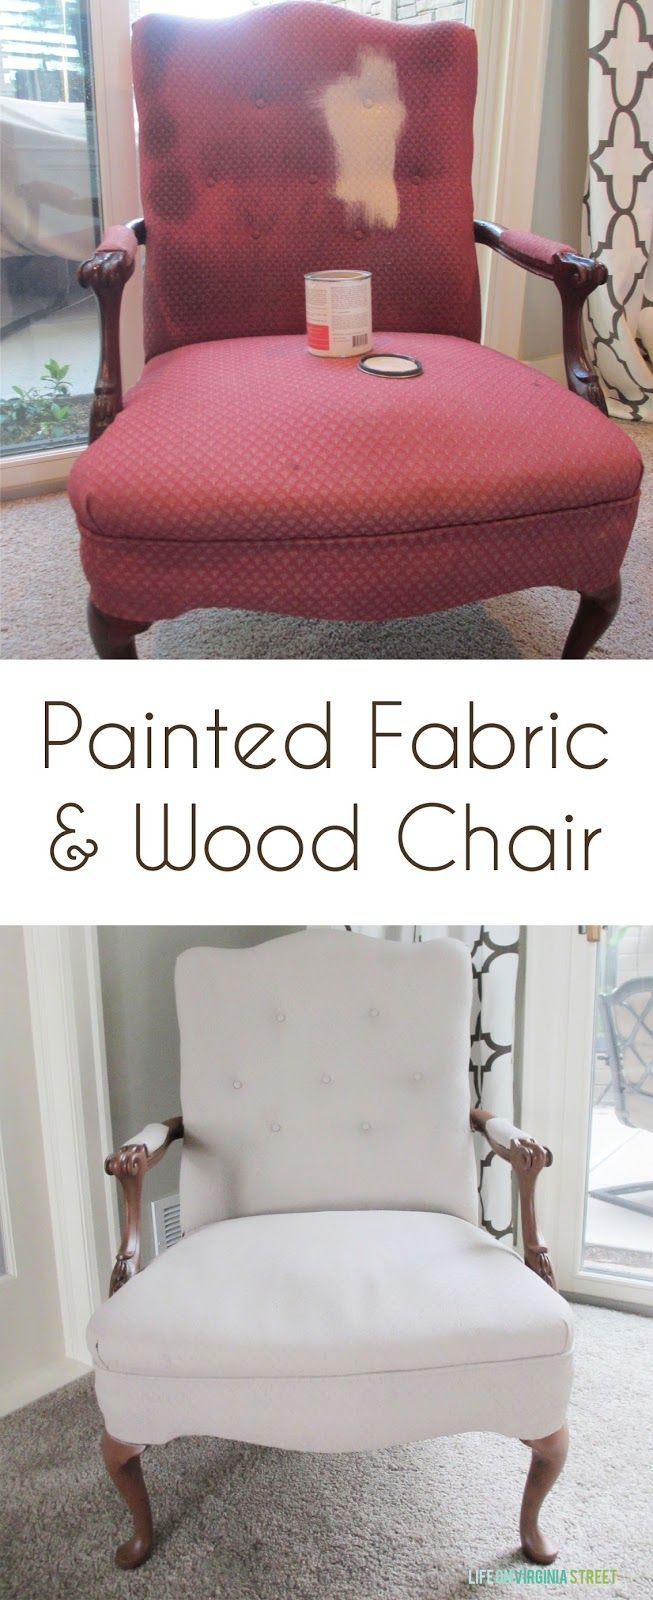 Painted fabric and wood chair using chalk-based paint and antiquing wax - such an easy update!